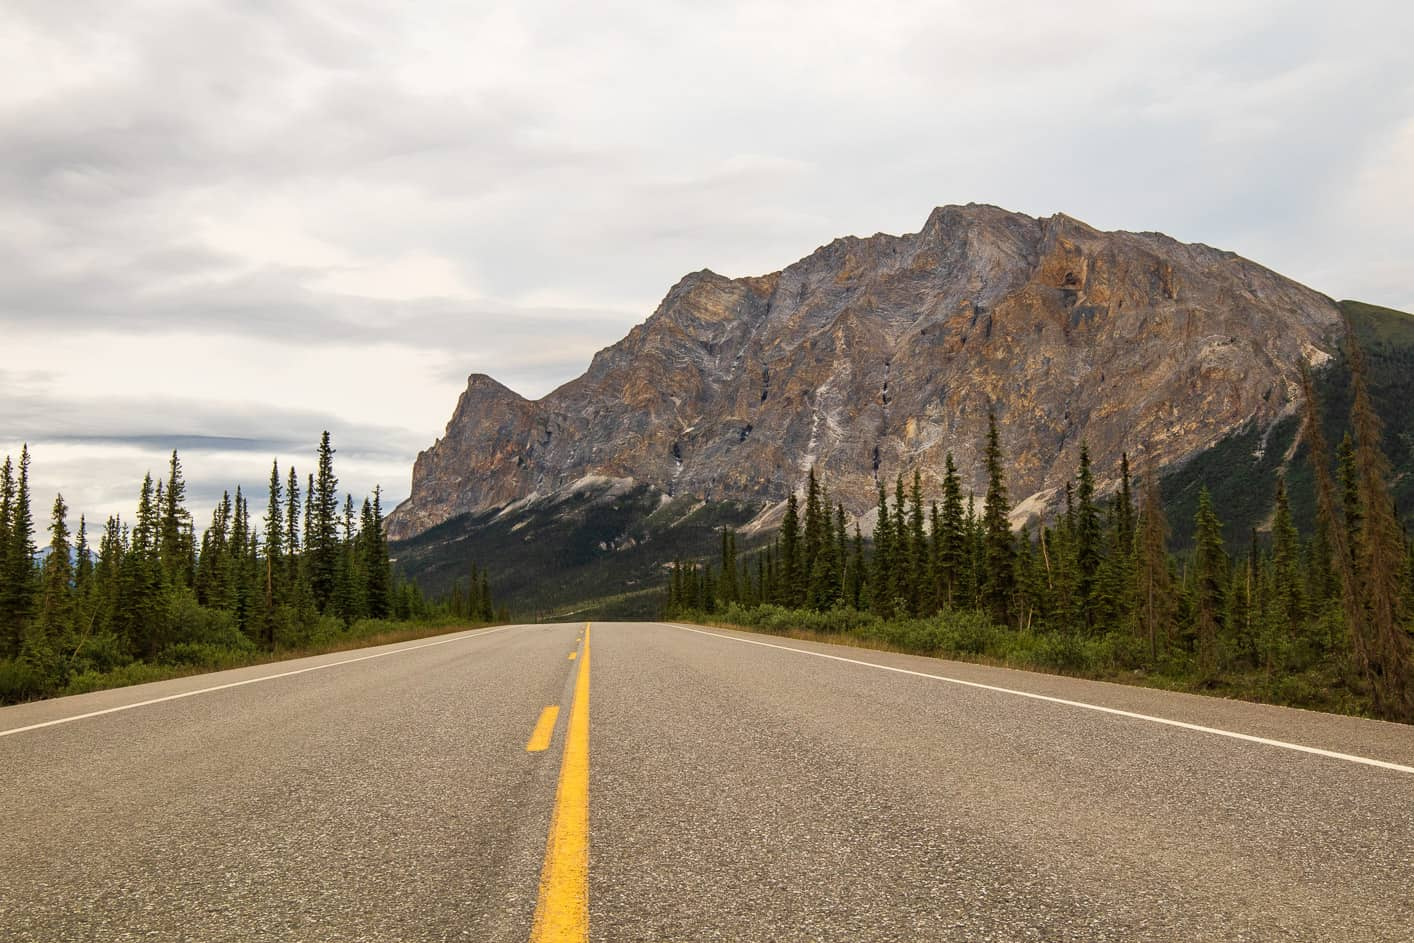 A view of the Dalton Highway